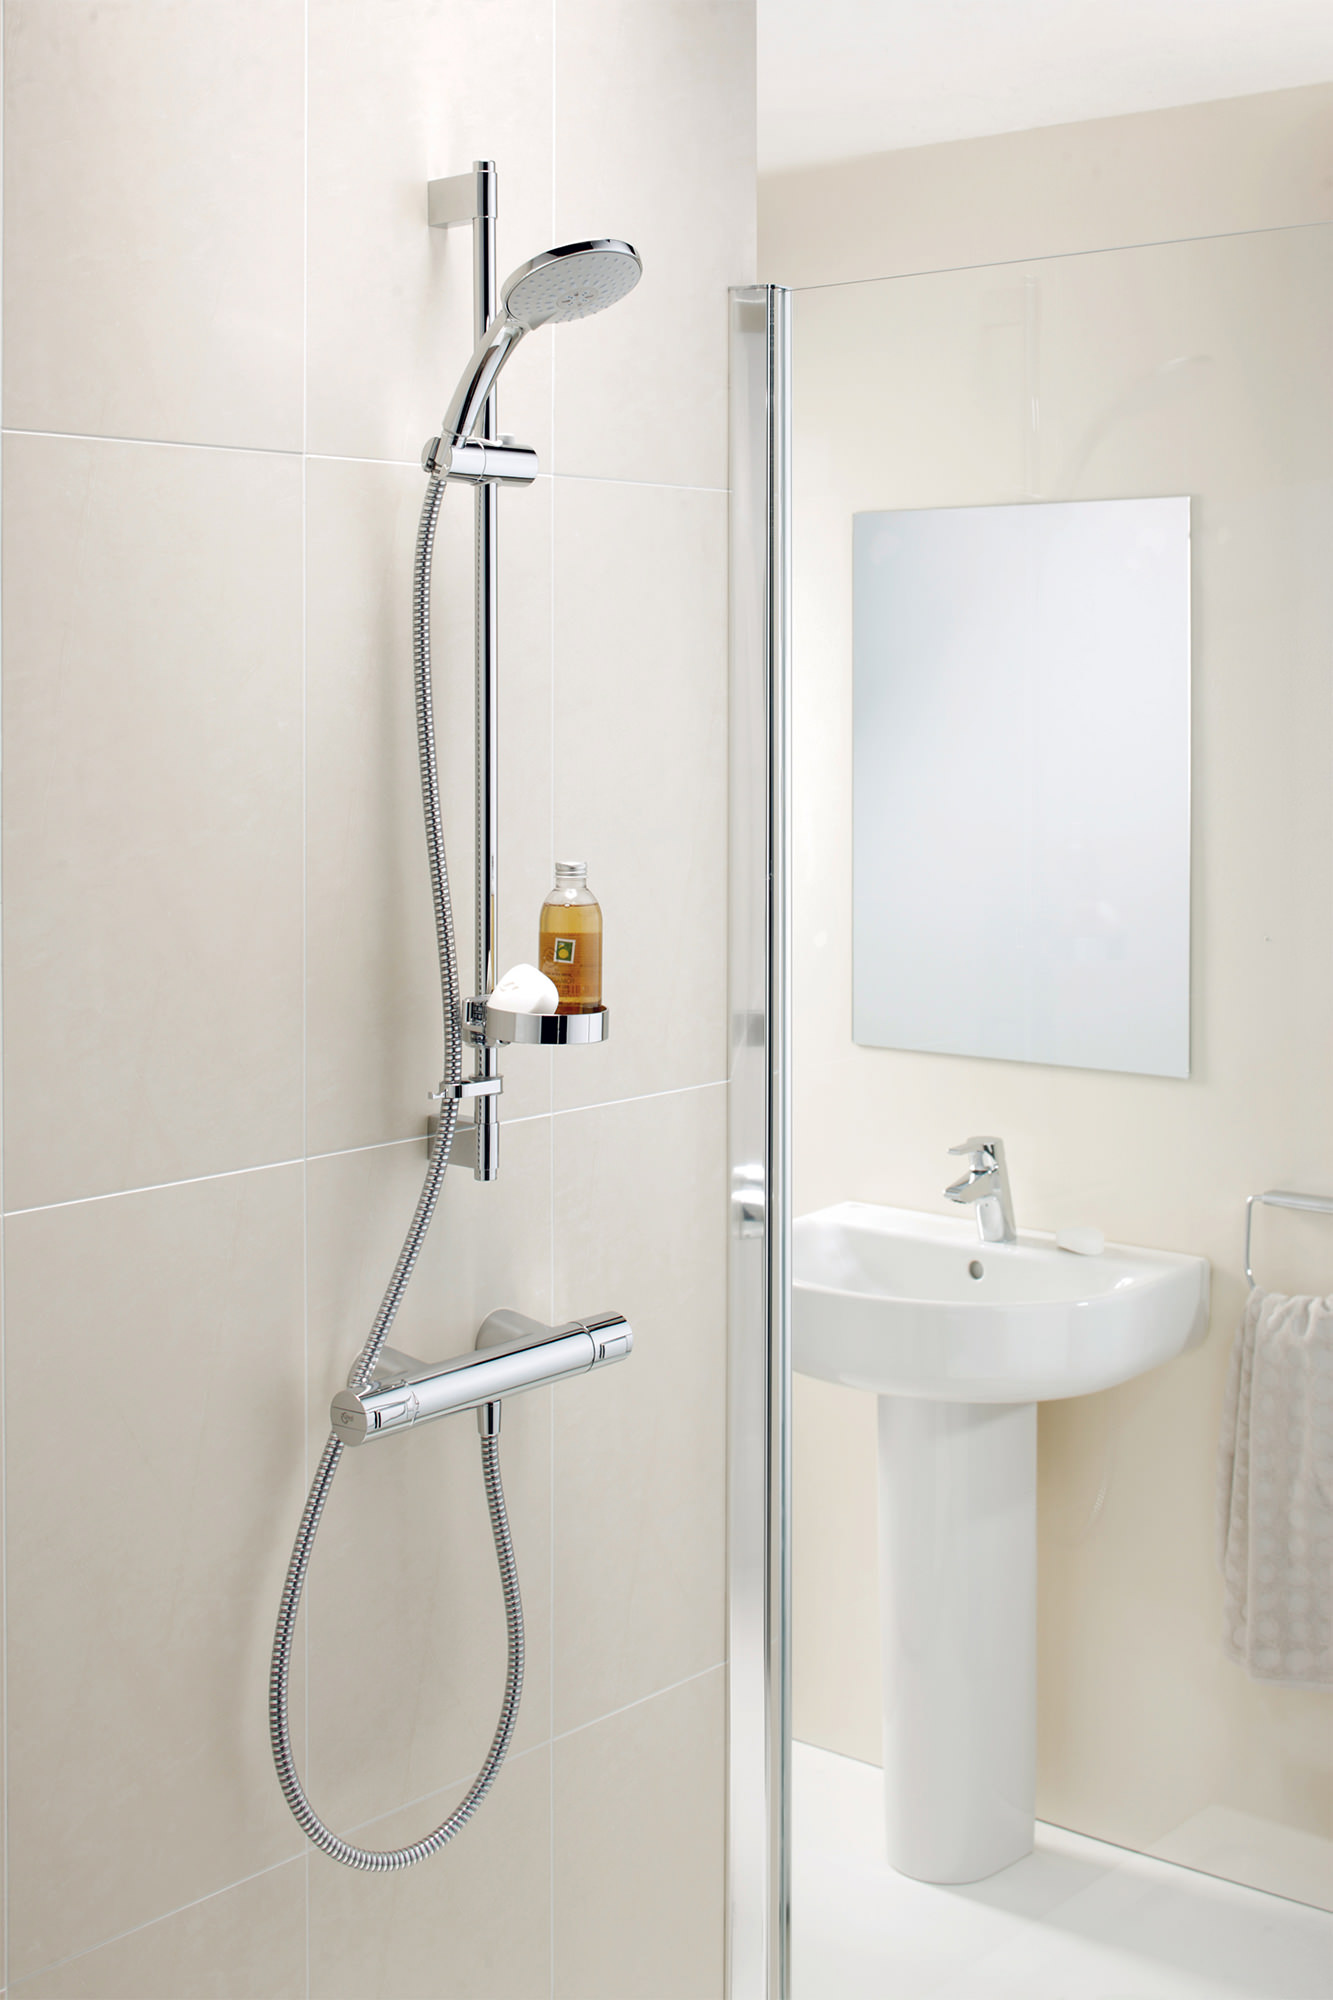 Ideal Standard Ceratherm 200 Thermostatic Exposed Shower Valve